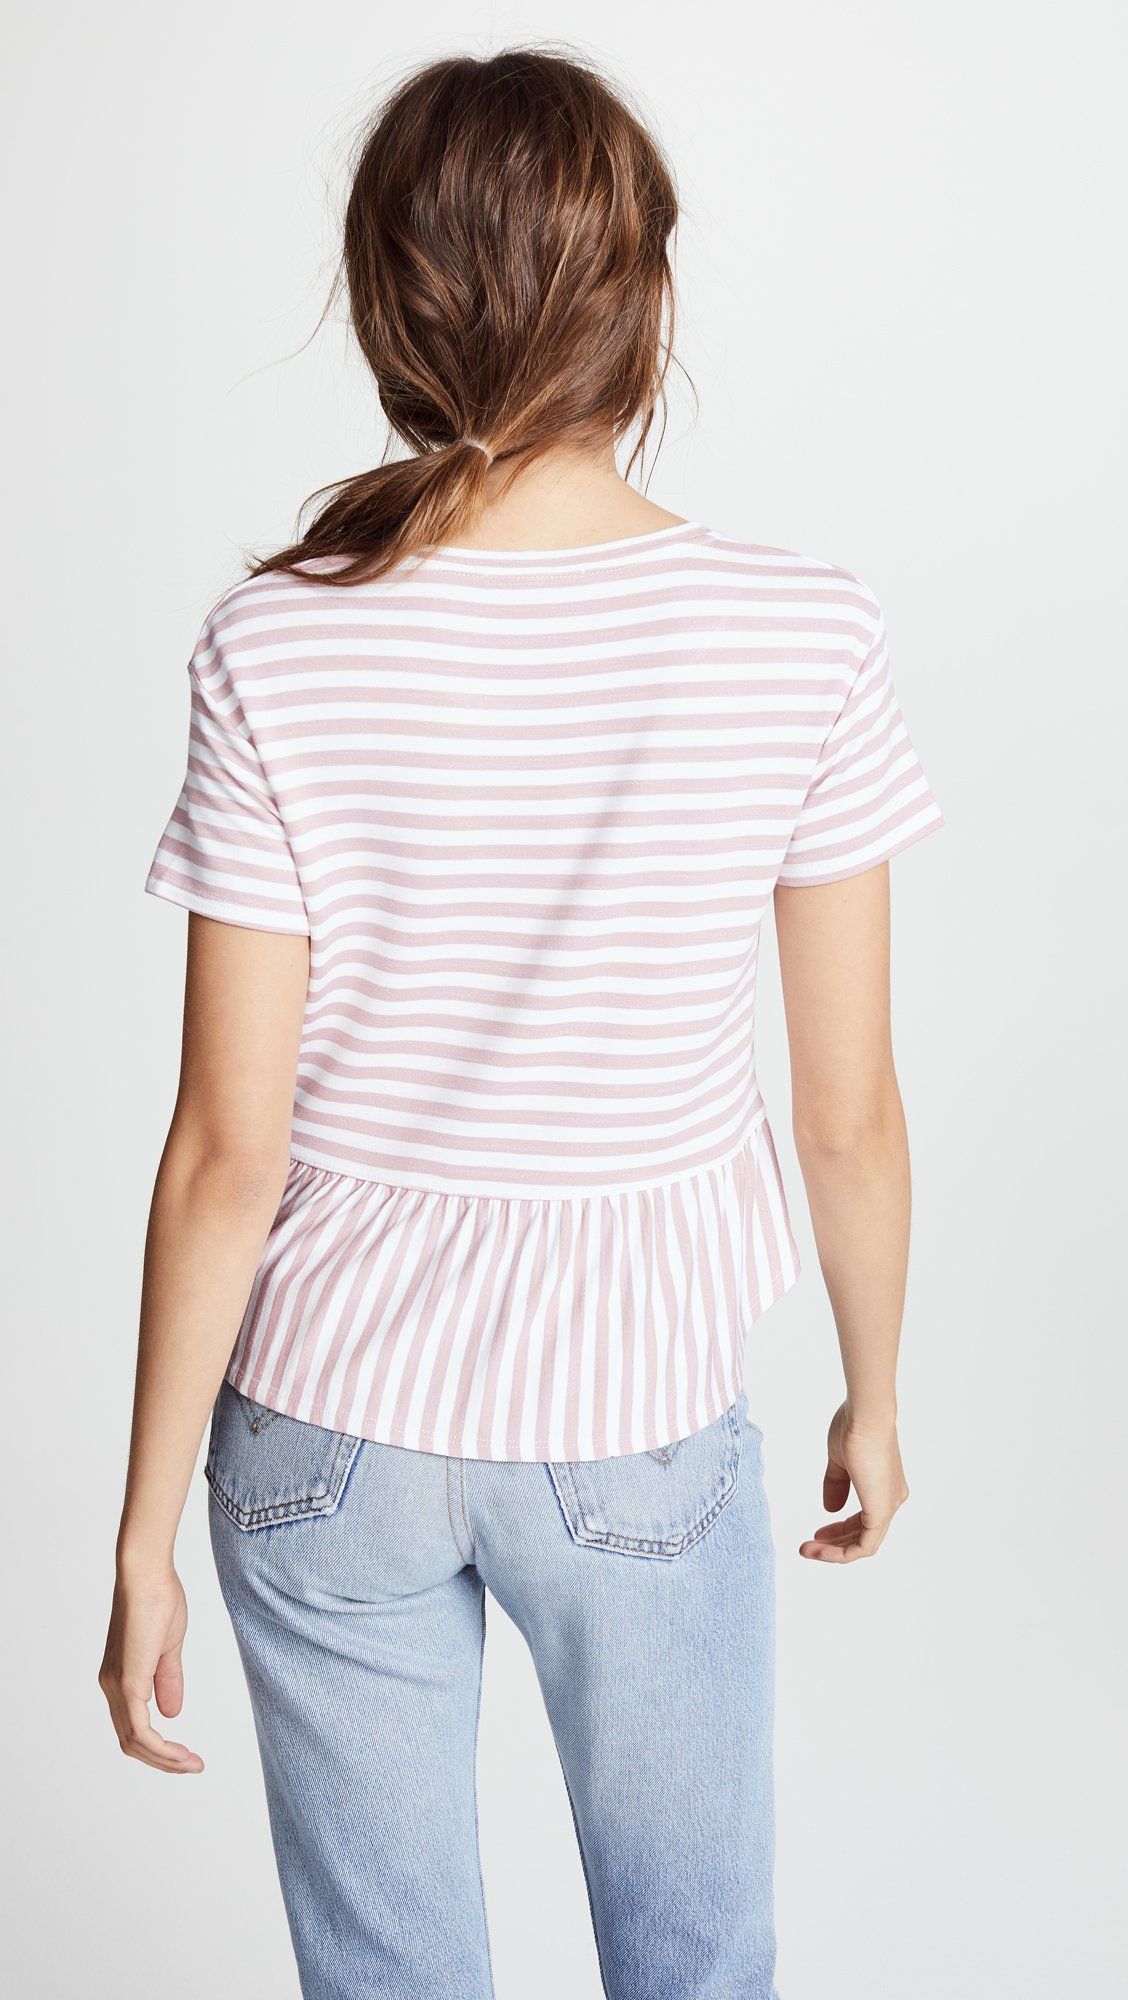 Three Dots Women's Cape Cod Stripe Loose Short Top, Rose/White, Extra Small by Three Dots (Image #3)